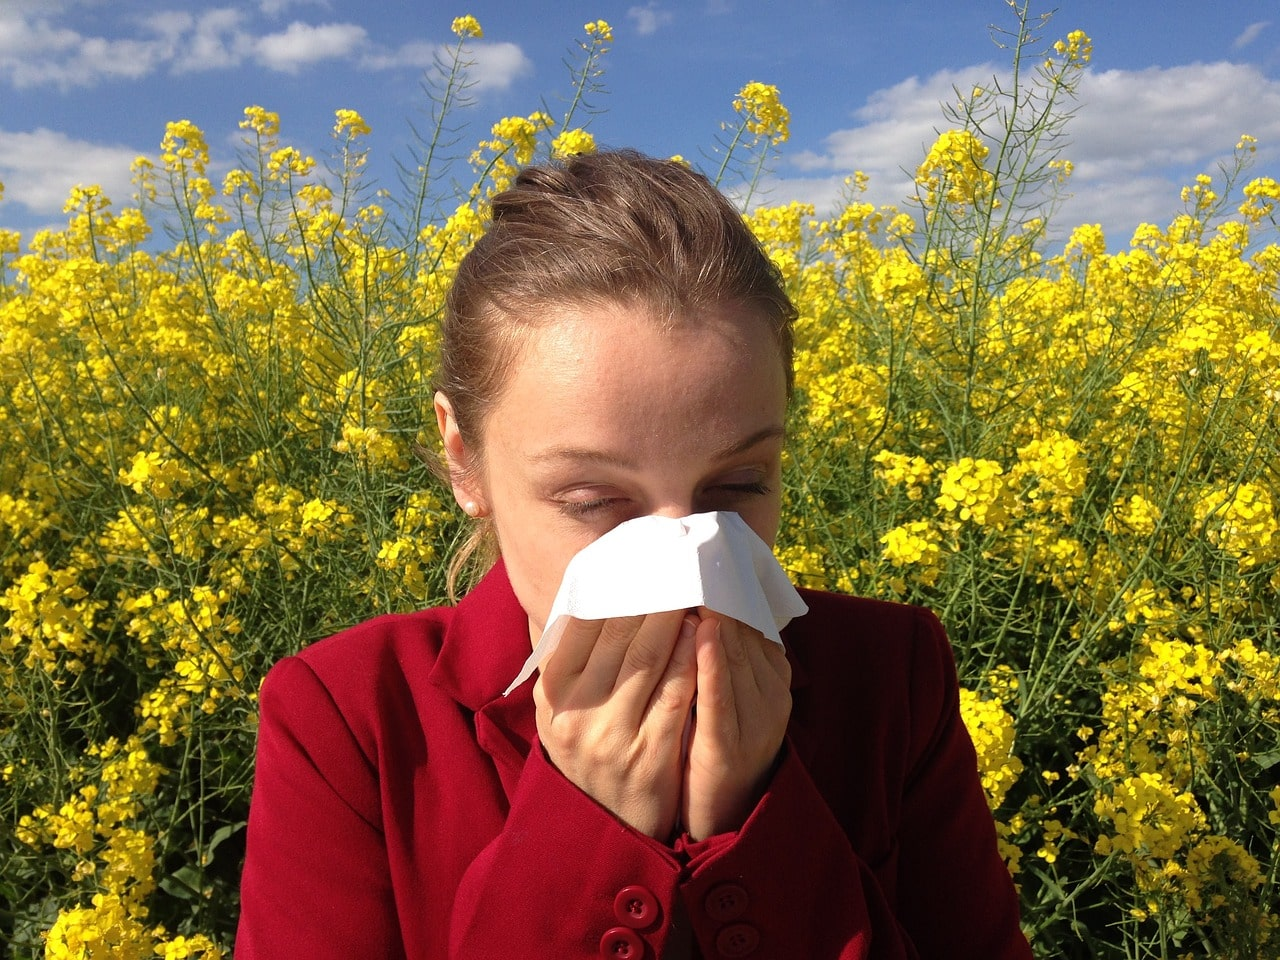 Allergie, asthme